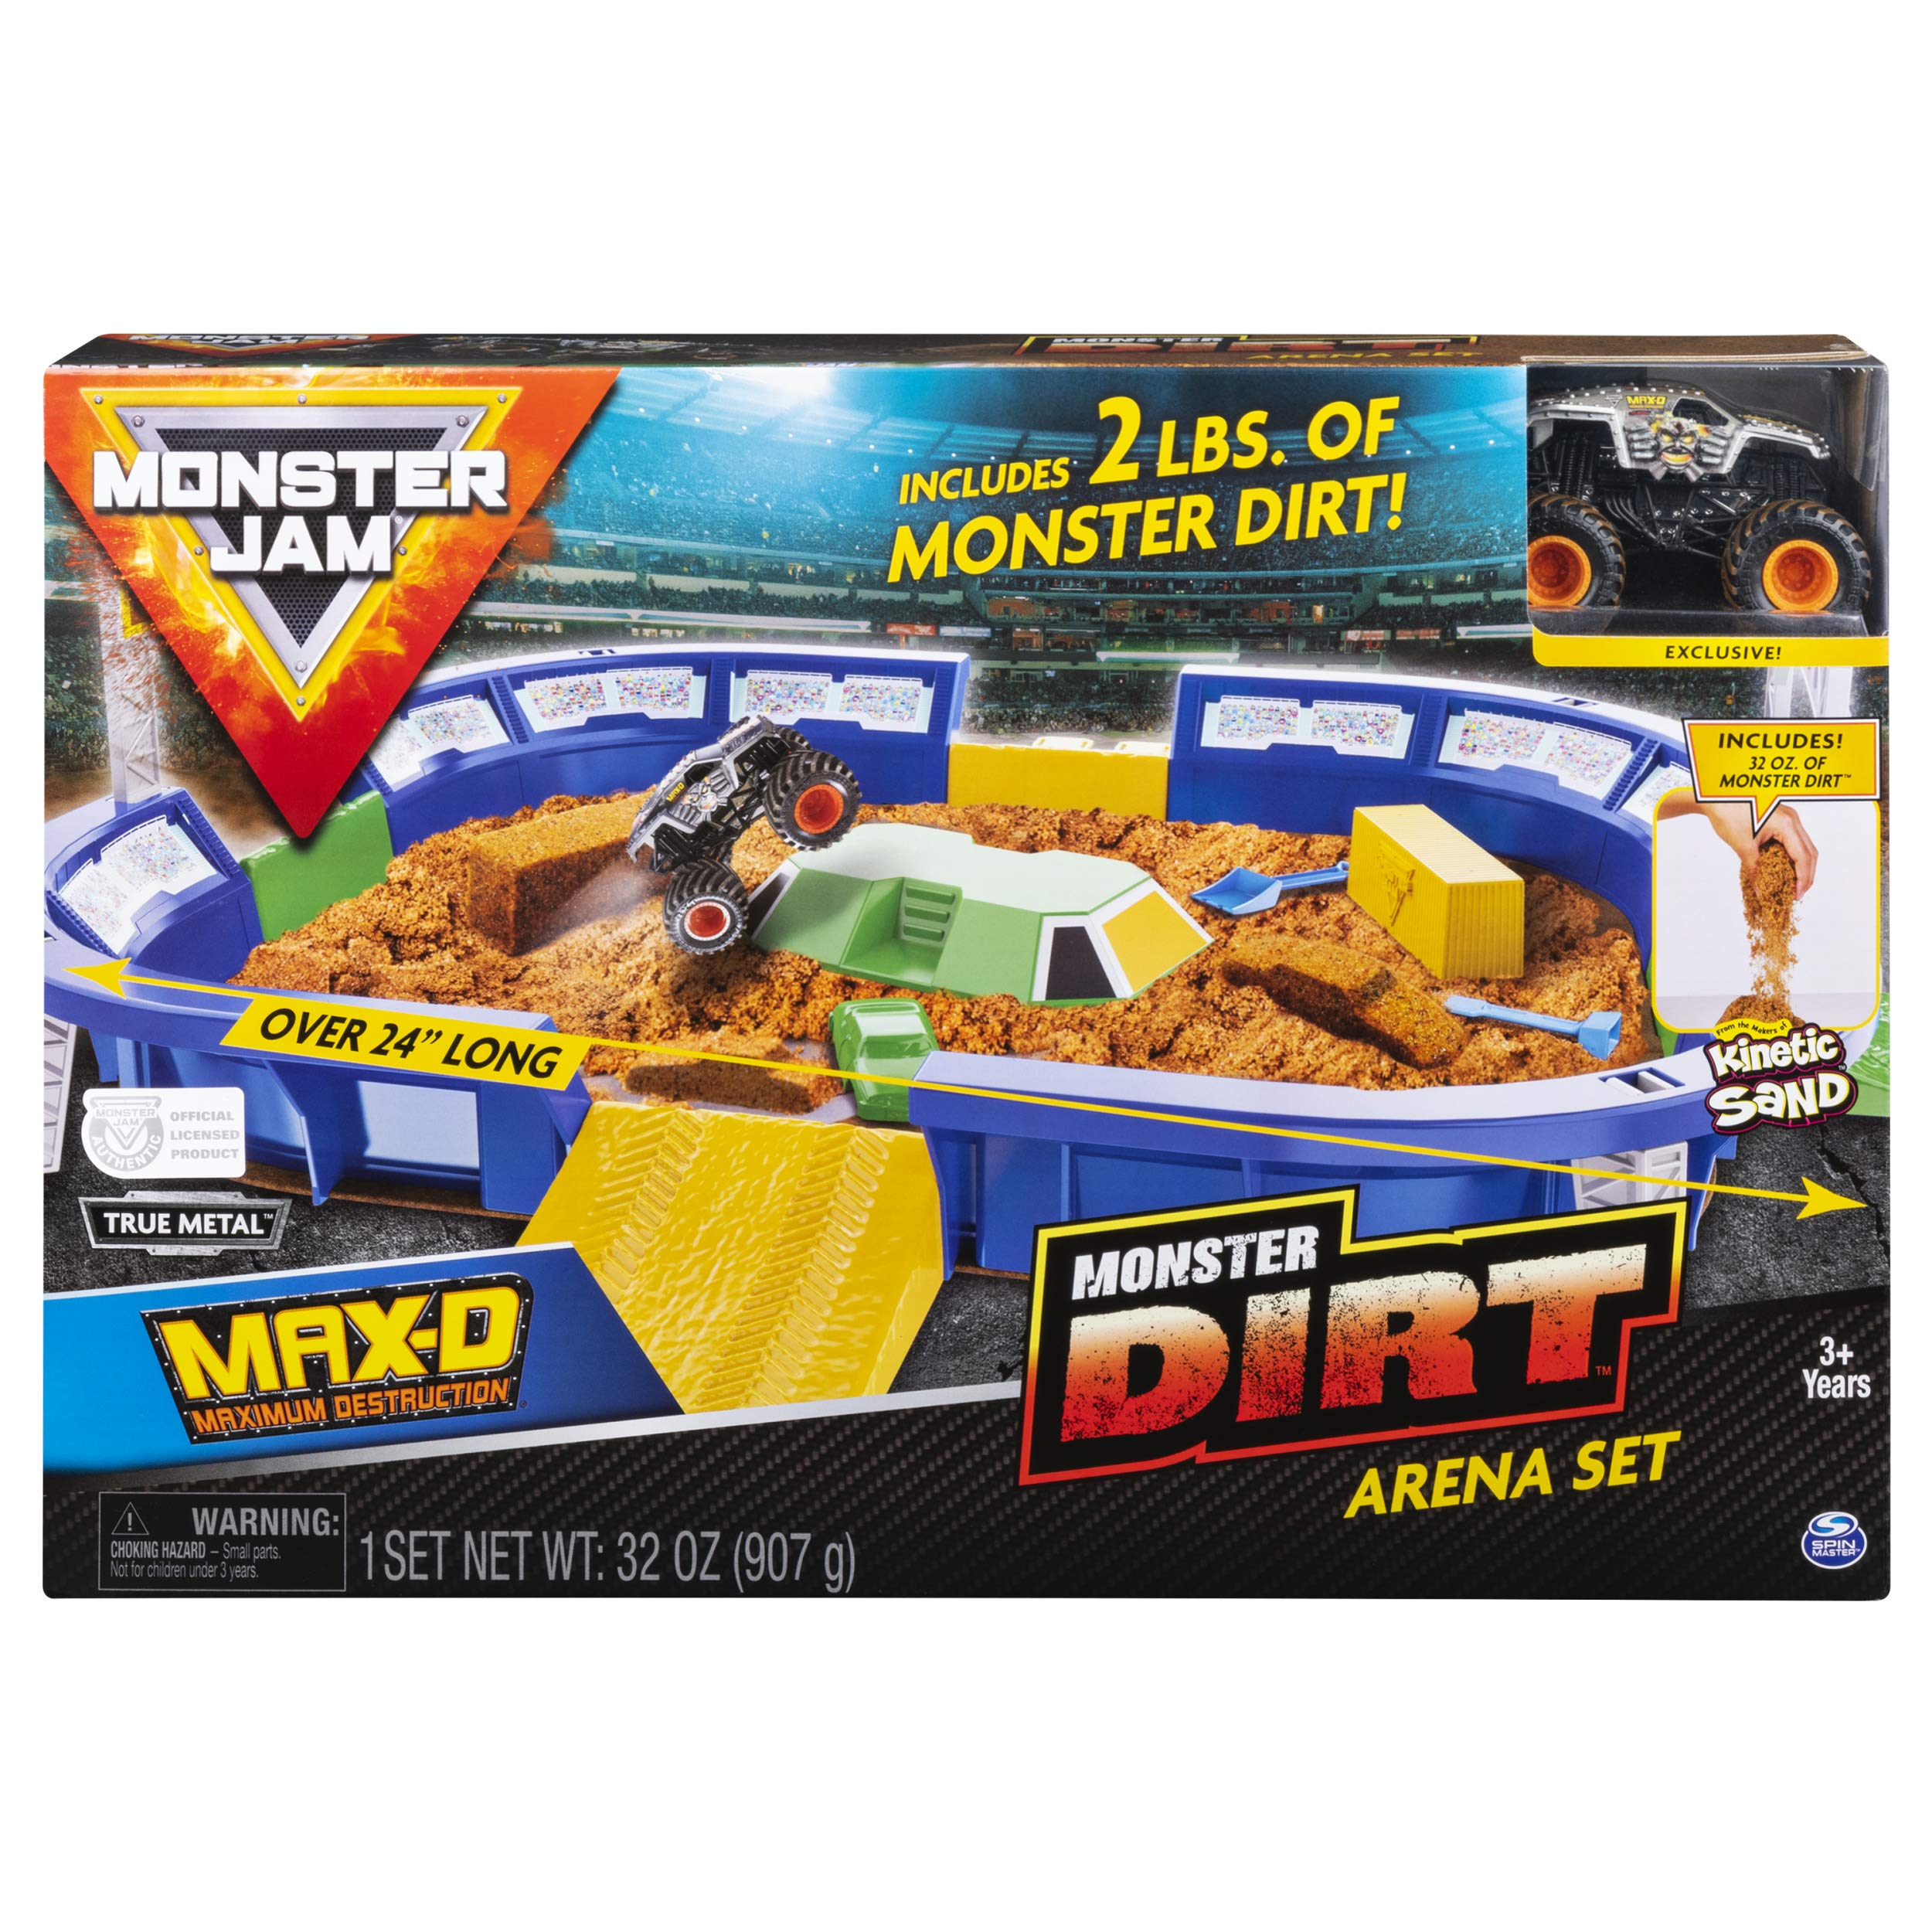 Monster Jam, Monster Dirt Arena 24'' Playset with 2lbs of Monster Dirt & Exclusive 1: 64 Scale Die-Cast Truck